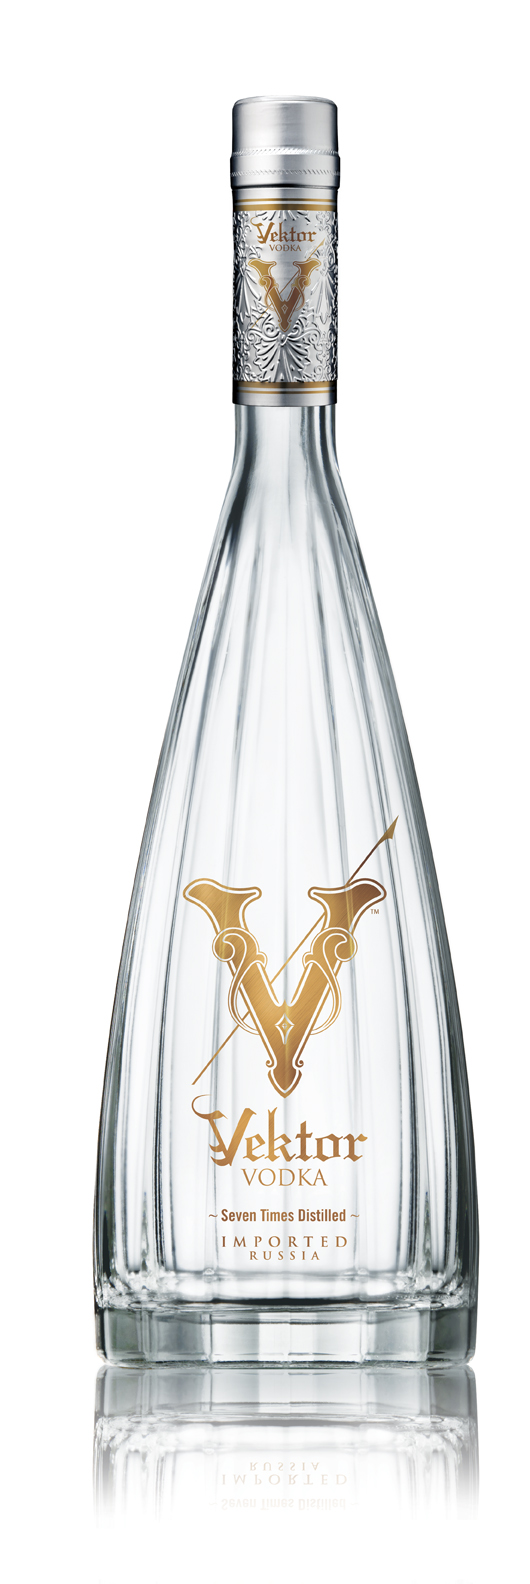 Vektor Bottle Vektor Vodka Launches in Arizona